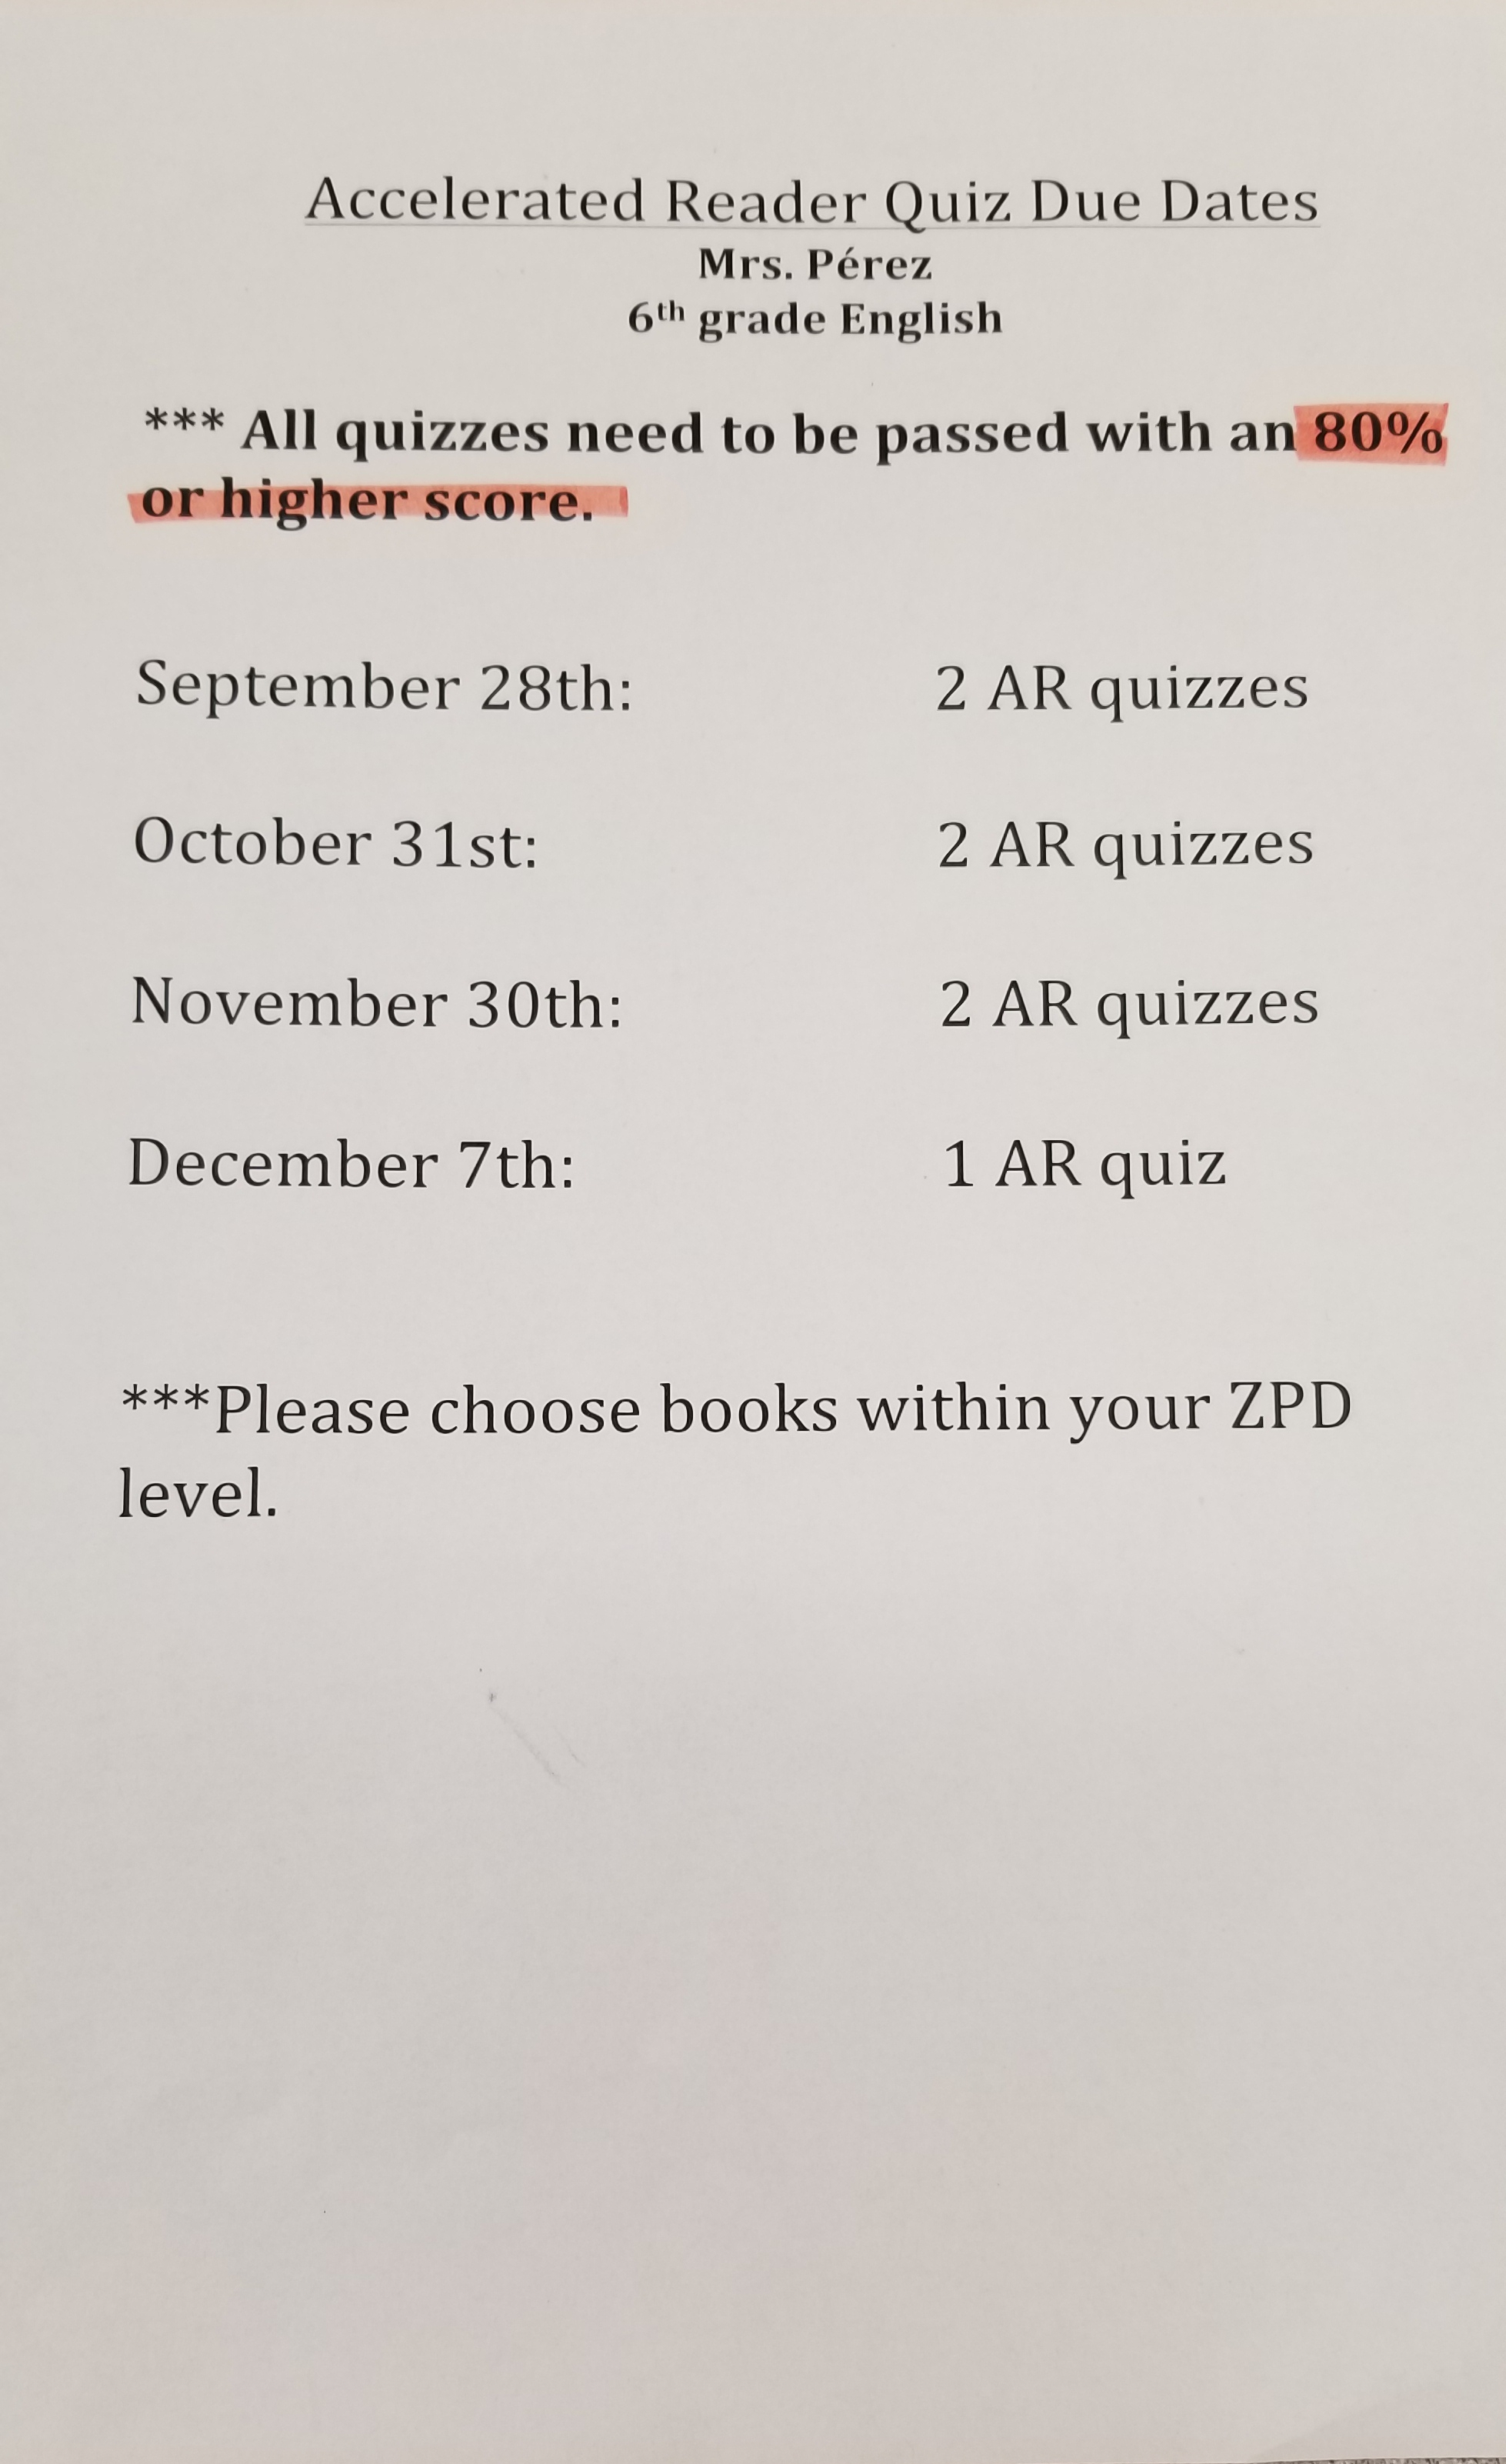 Accelerated Reader Due Dates